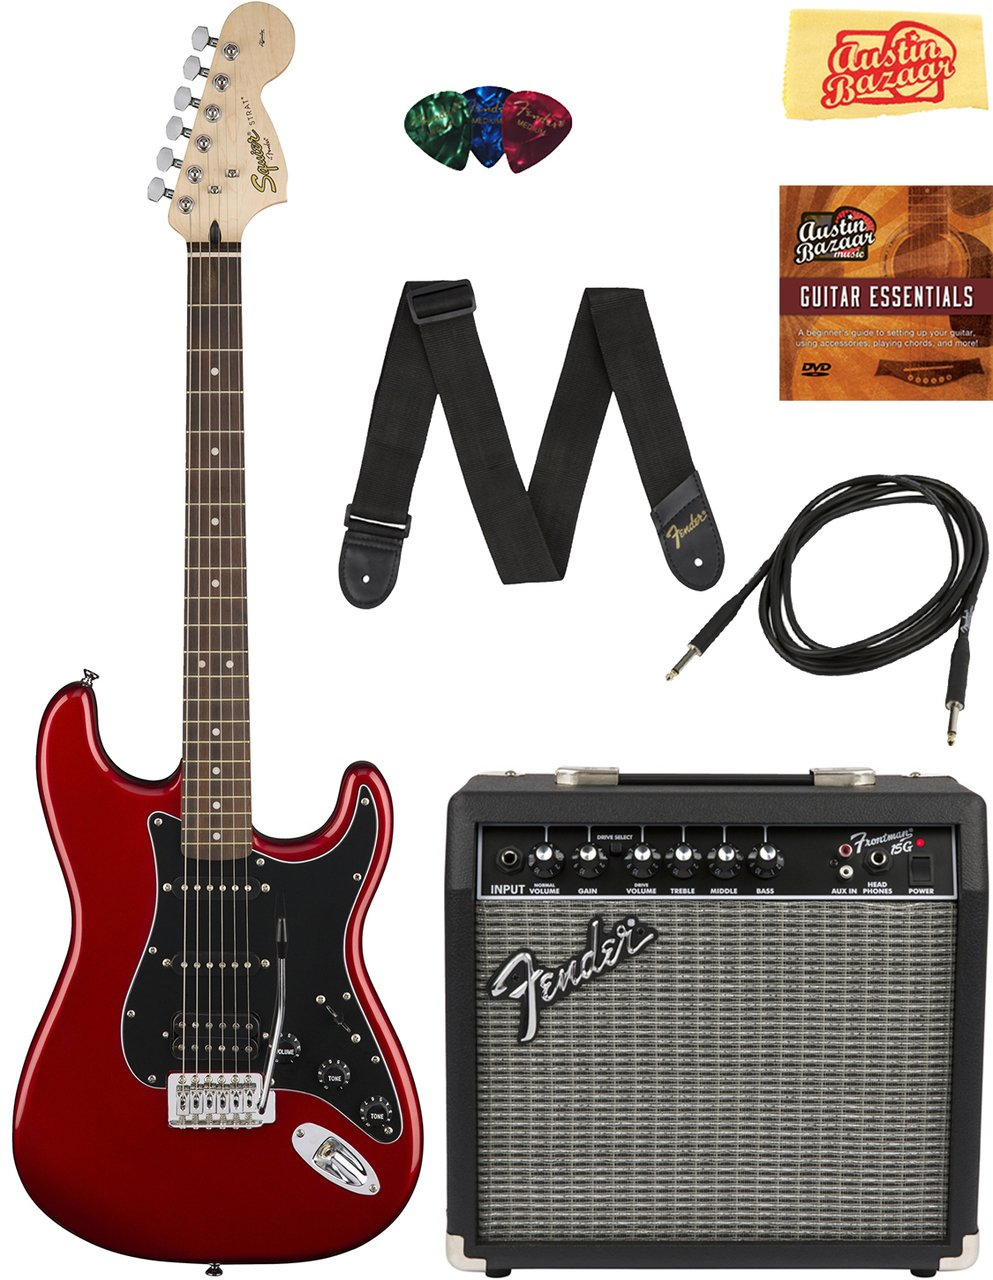 Squier by Fender Affinity Stratocaster HSS Pack with Frontman 15G Amp, Cable, Strap, Picks, and Online Lessons - Candy Apple Red Bundle with Austin Bazaar Instructional DVD